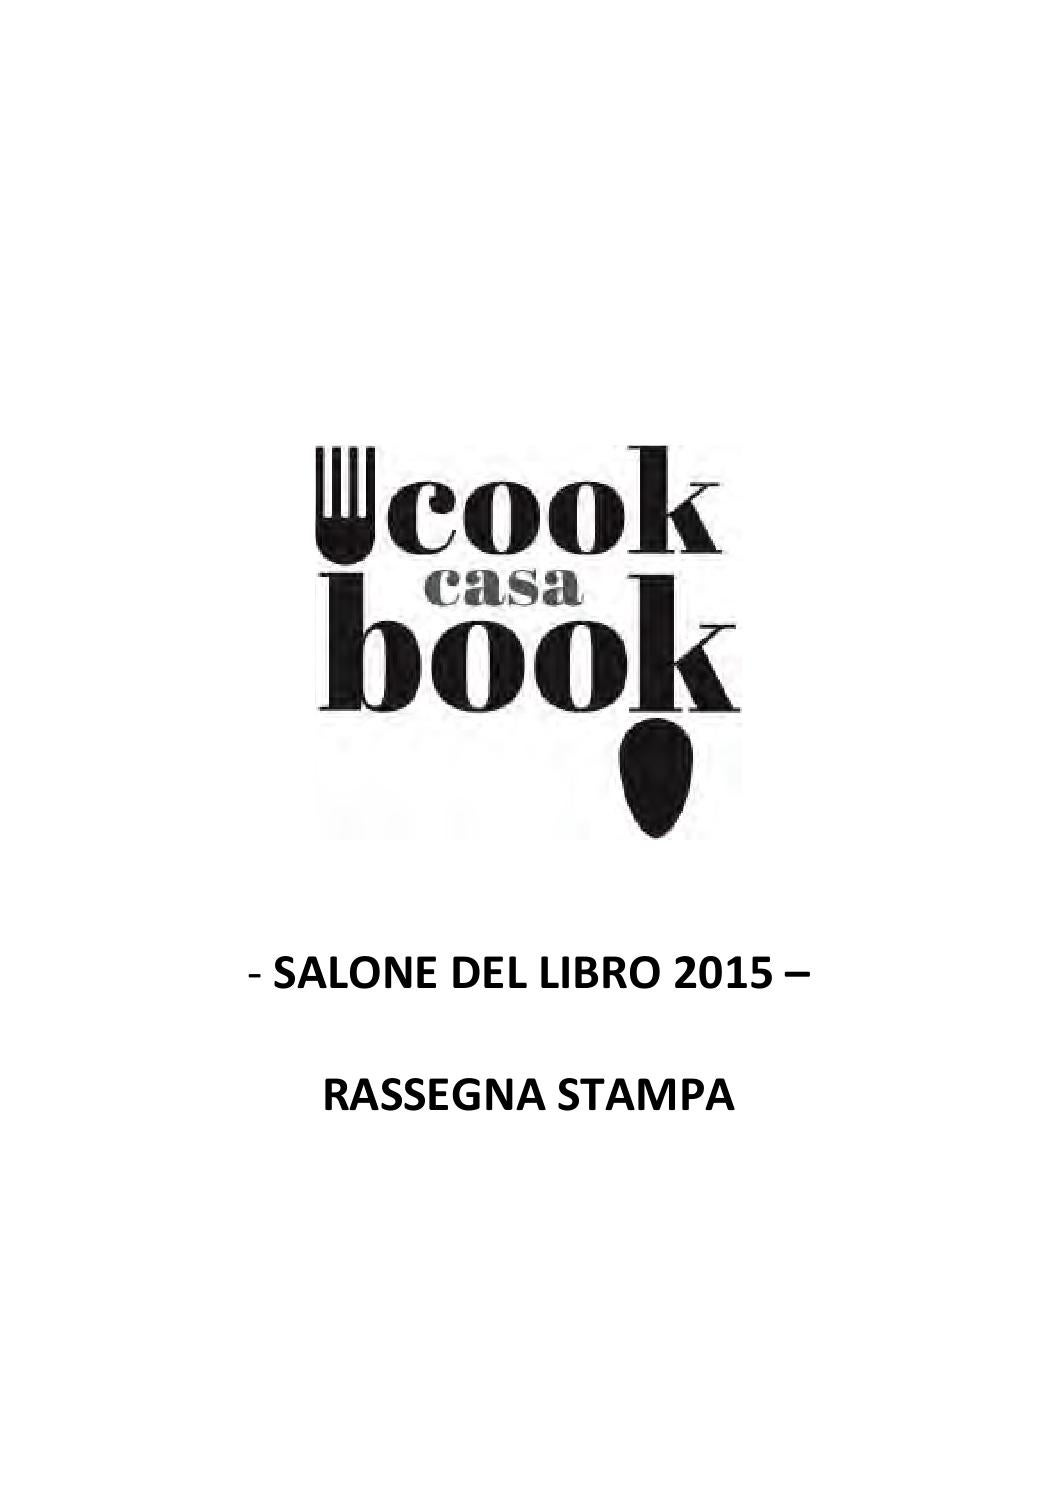 Rassegna stampa Casa Cookbook 2015 by Lingotto Fiere - issuu b60cca134f5a